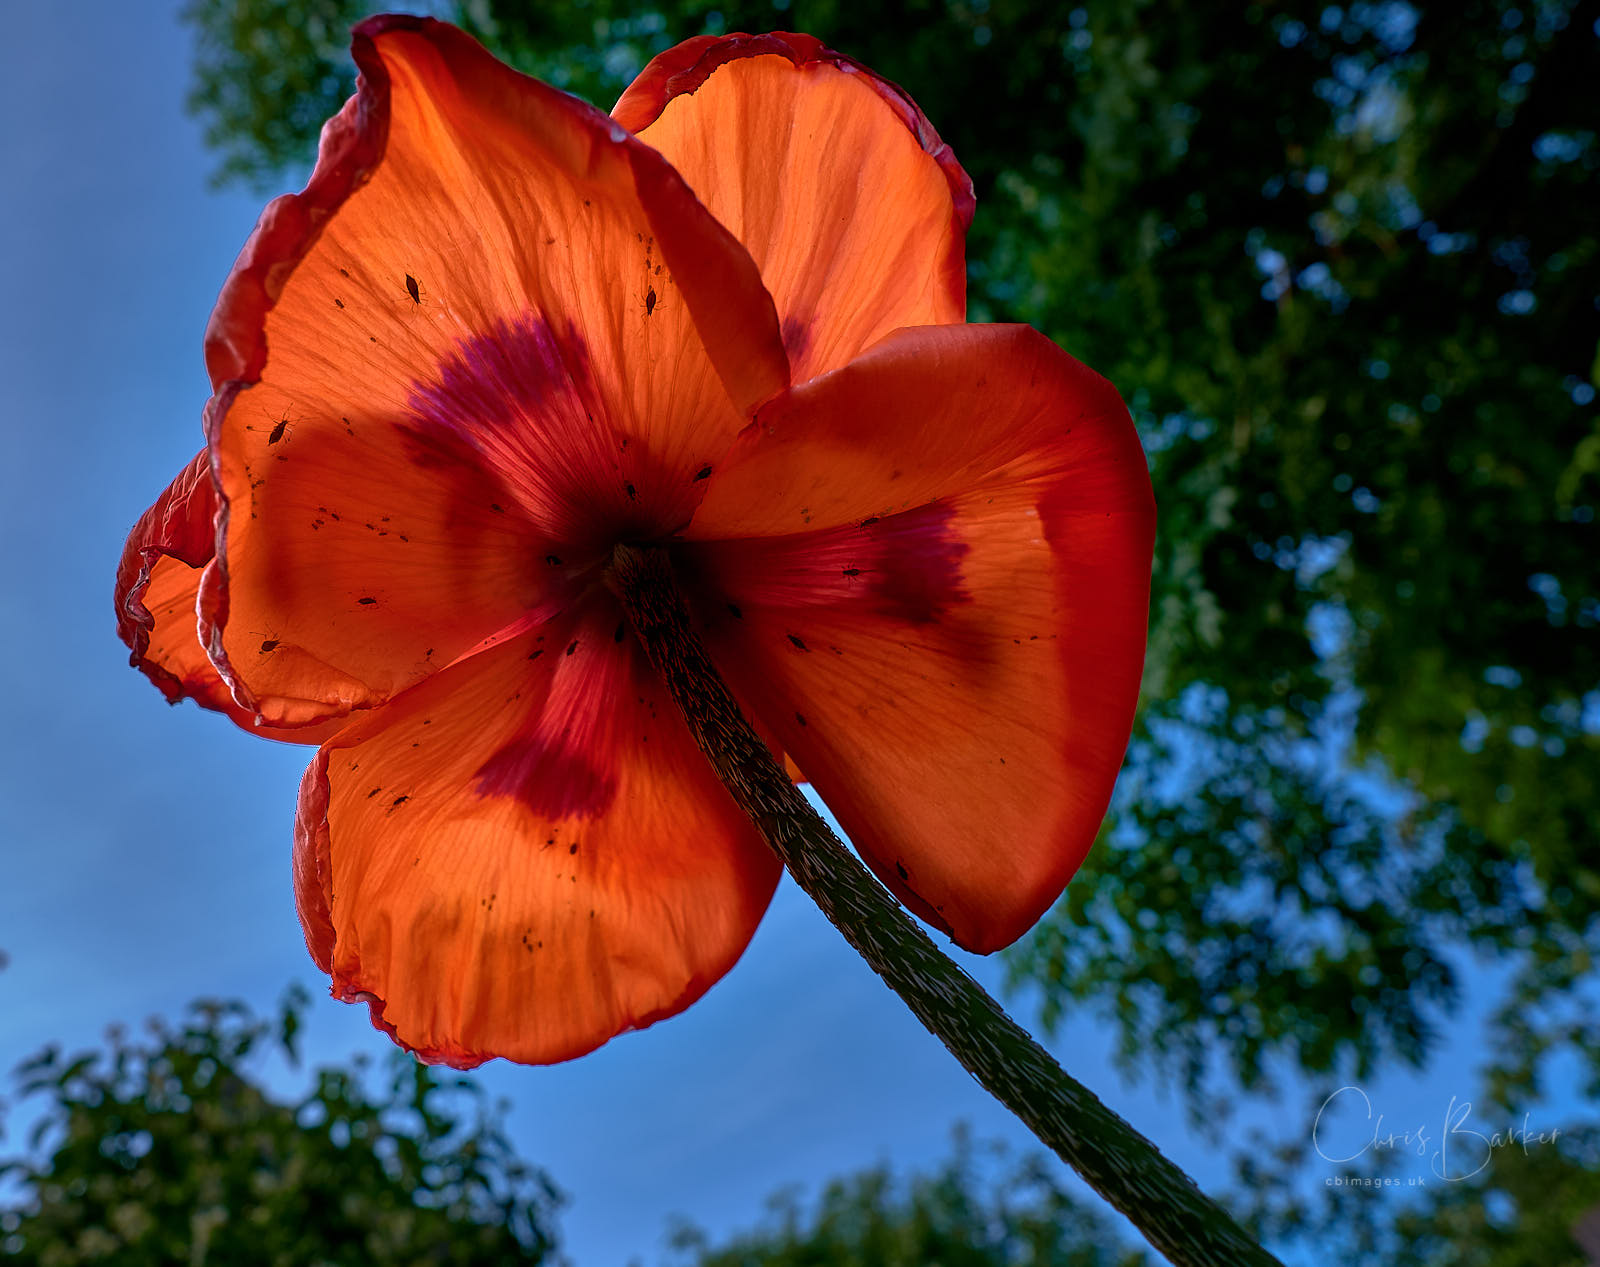 A view upwards of a giant poppy